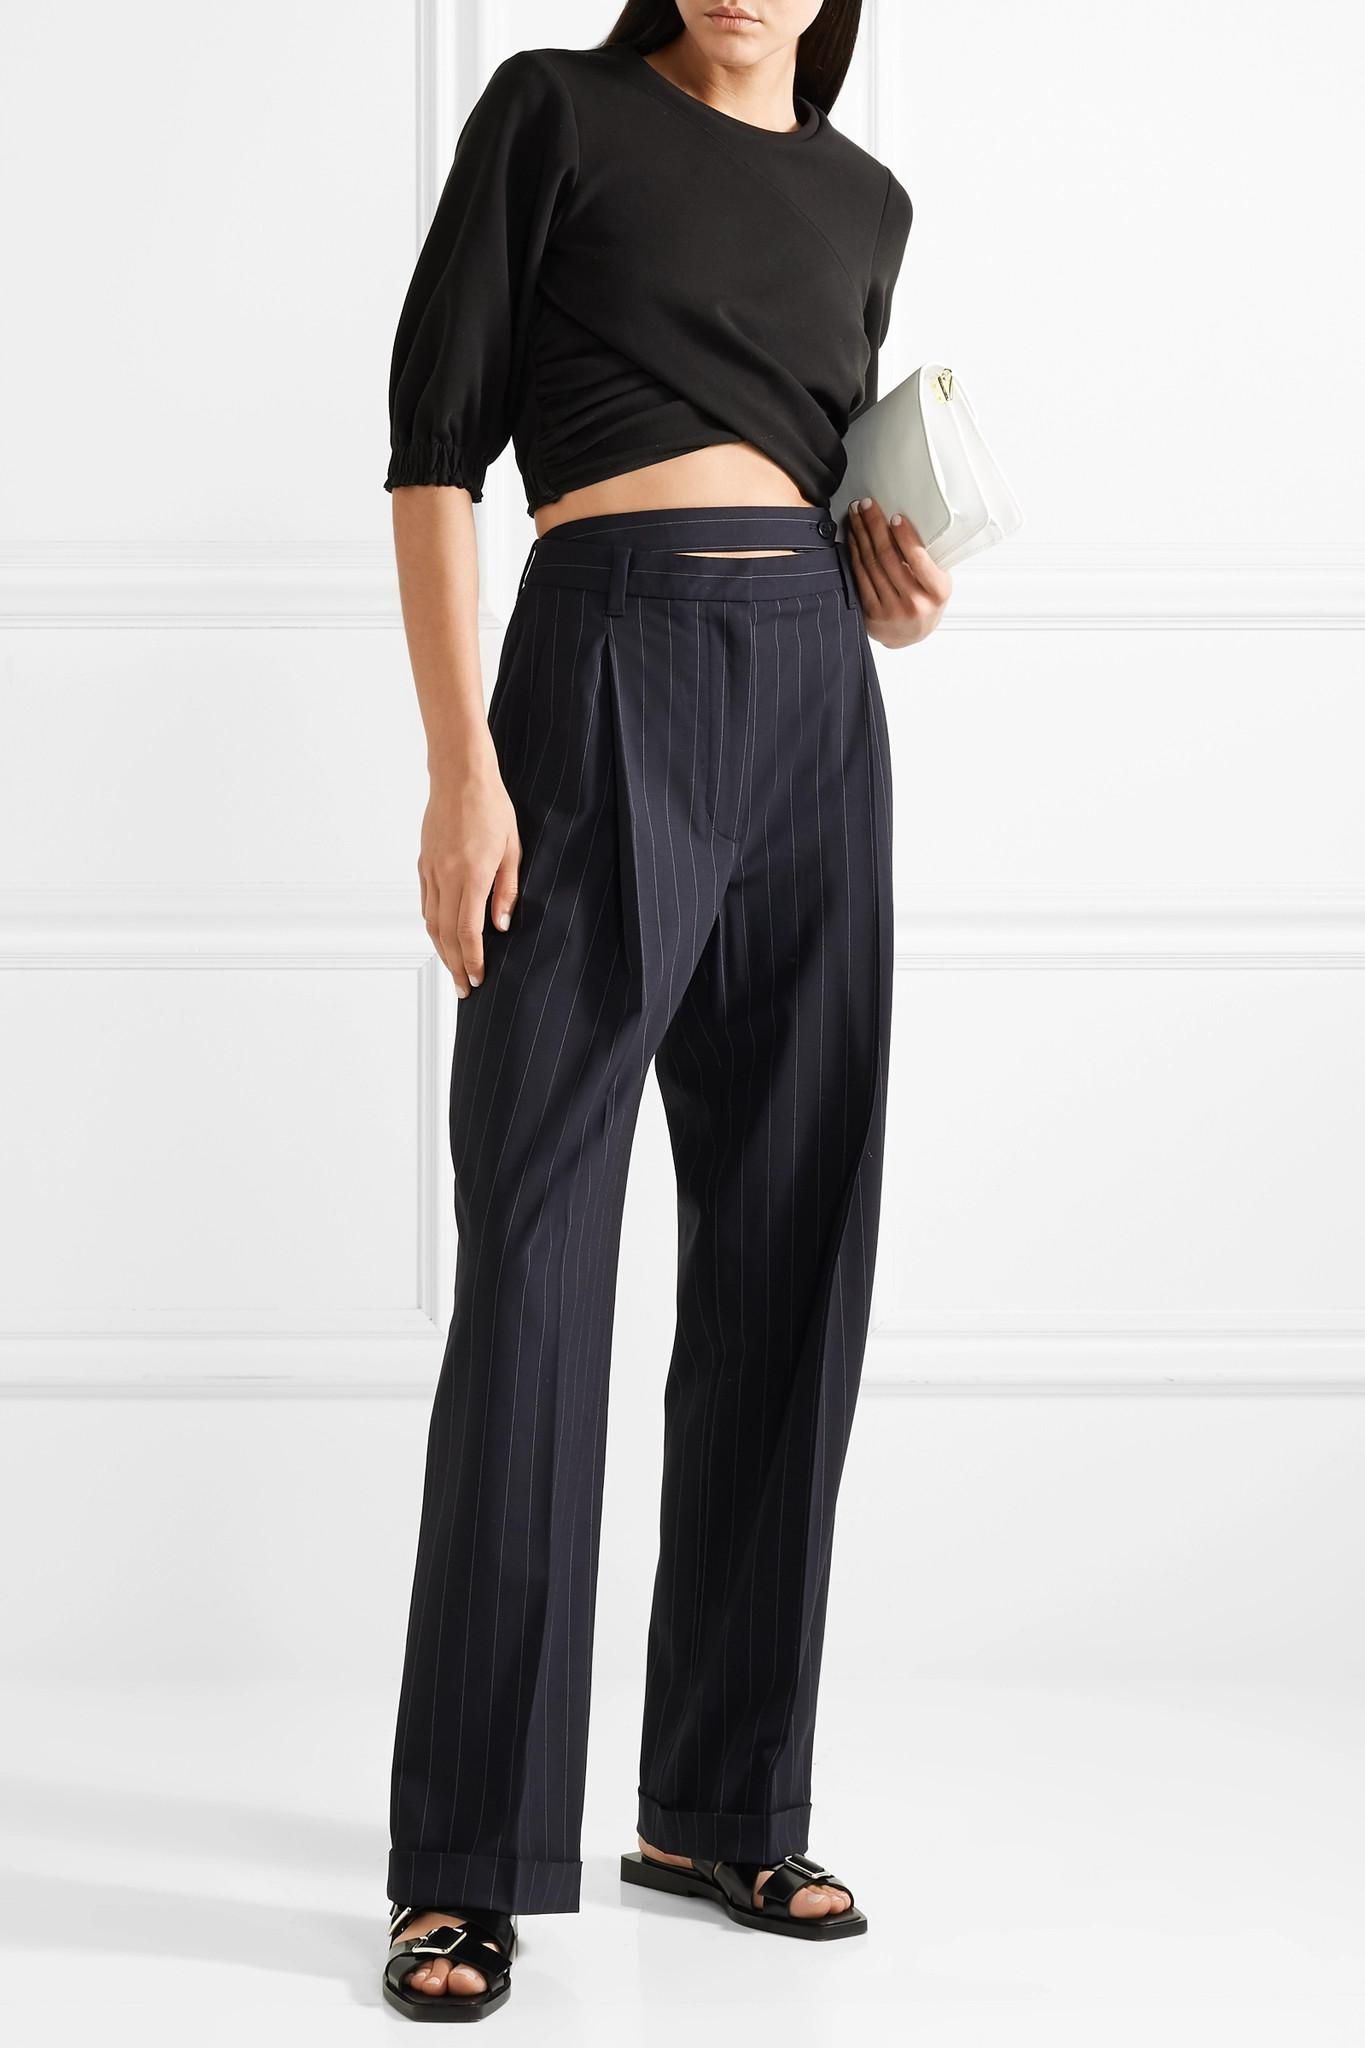 Belted Cutout Pinstriped Wool-blend Pants - Midnight blue 3.1 Phillip Lim